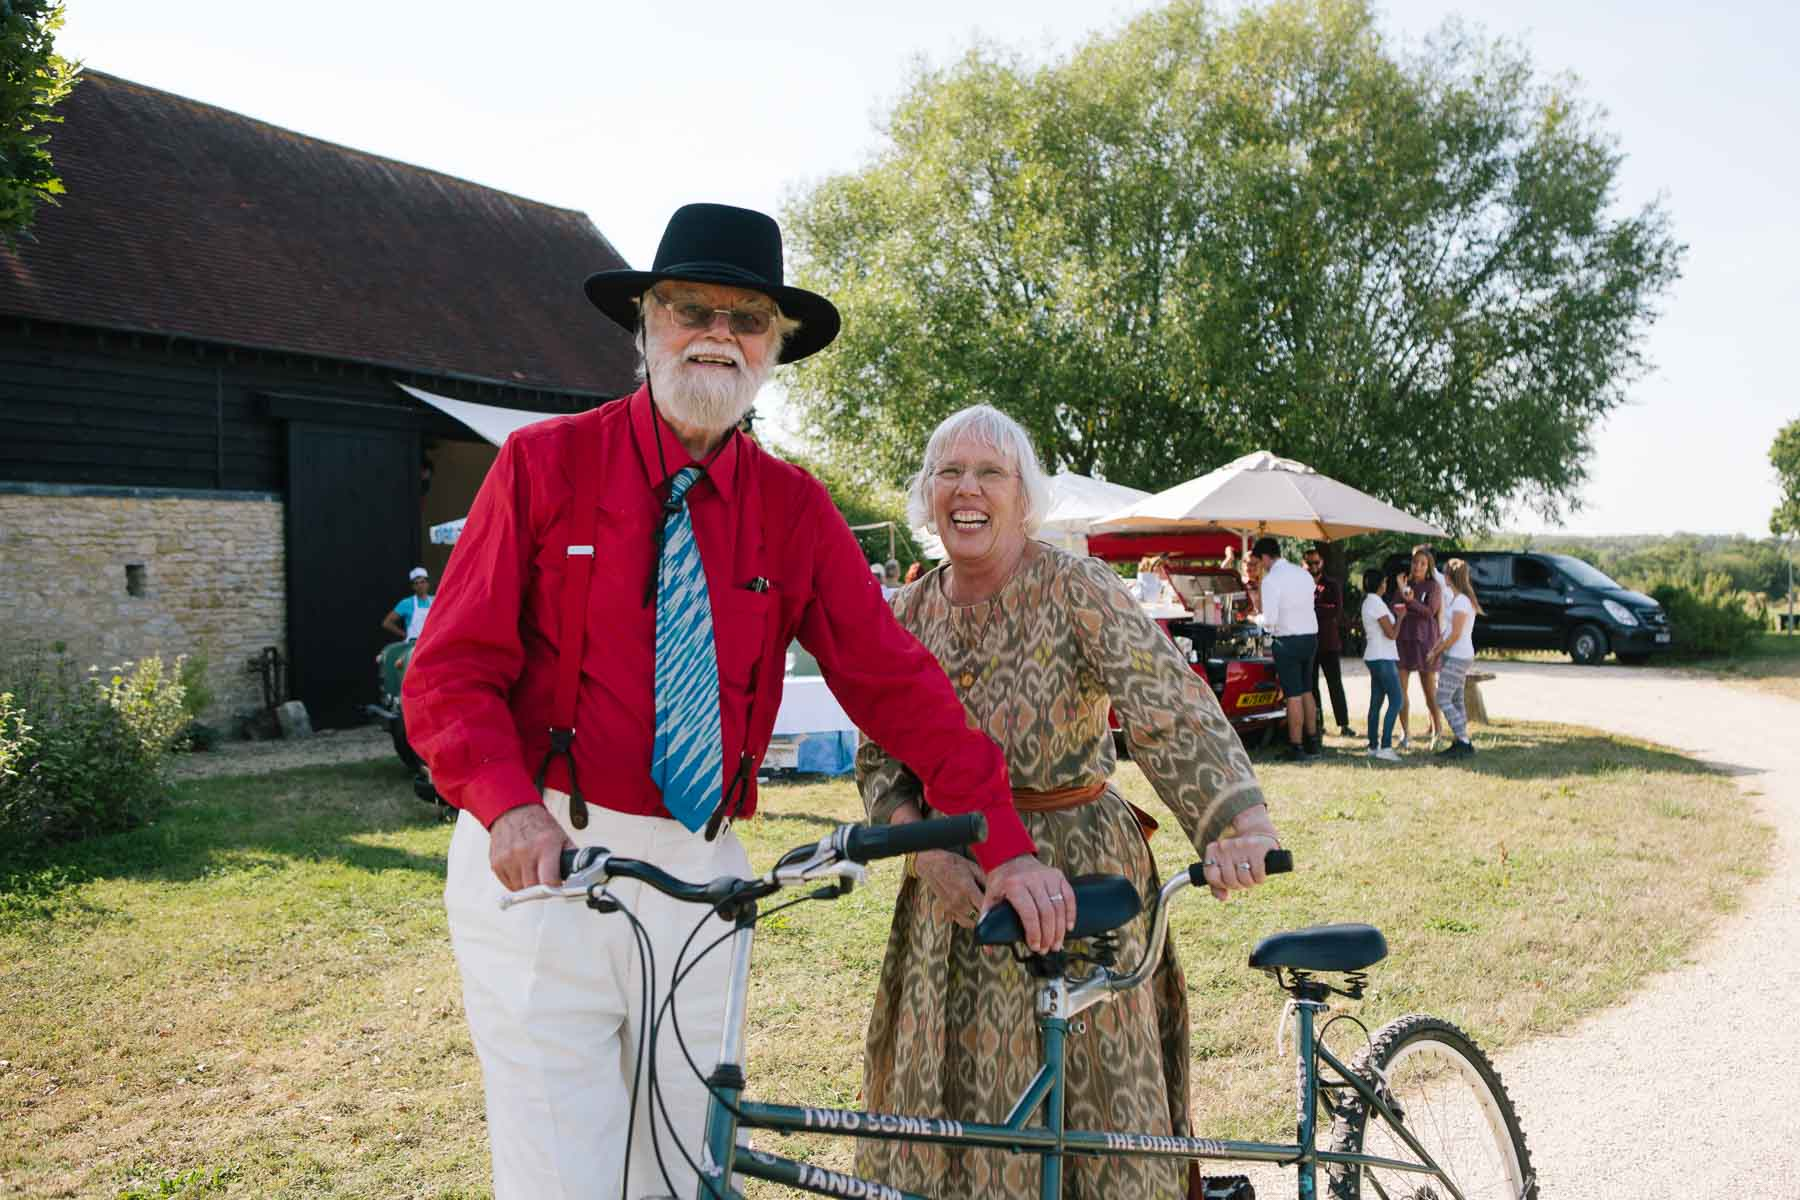 Bride in patterned dress and groom in scarlet shirt pose next to tandem bicycle